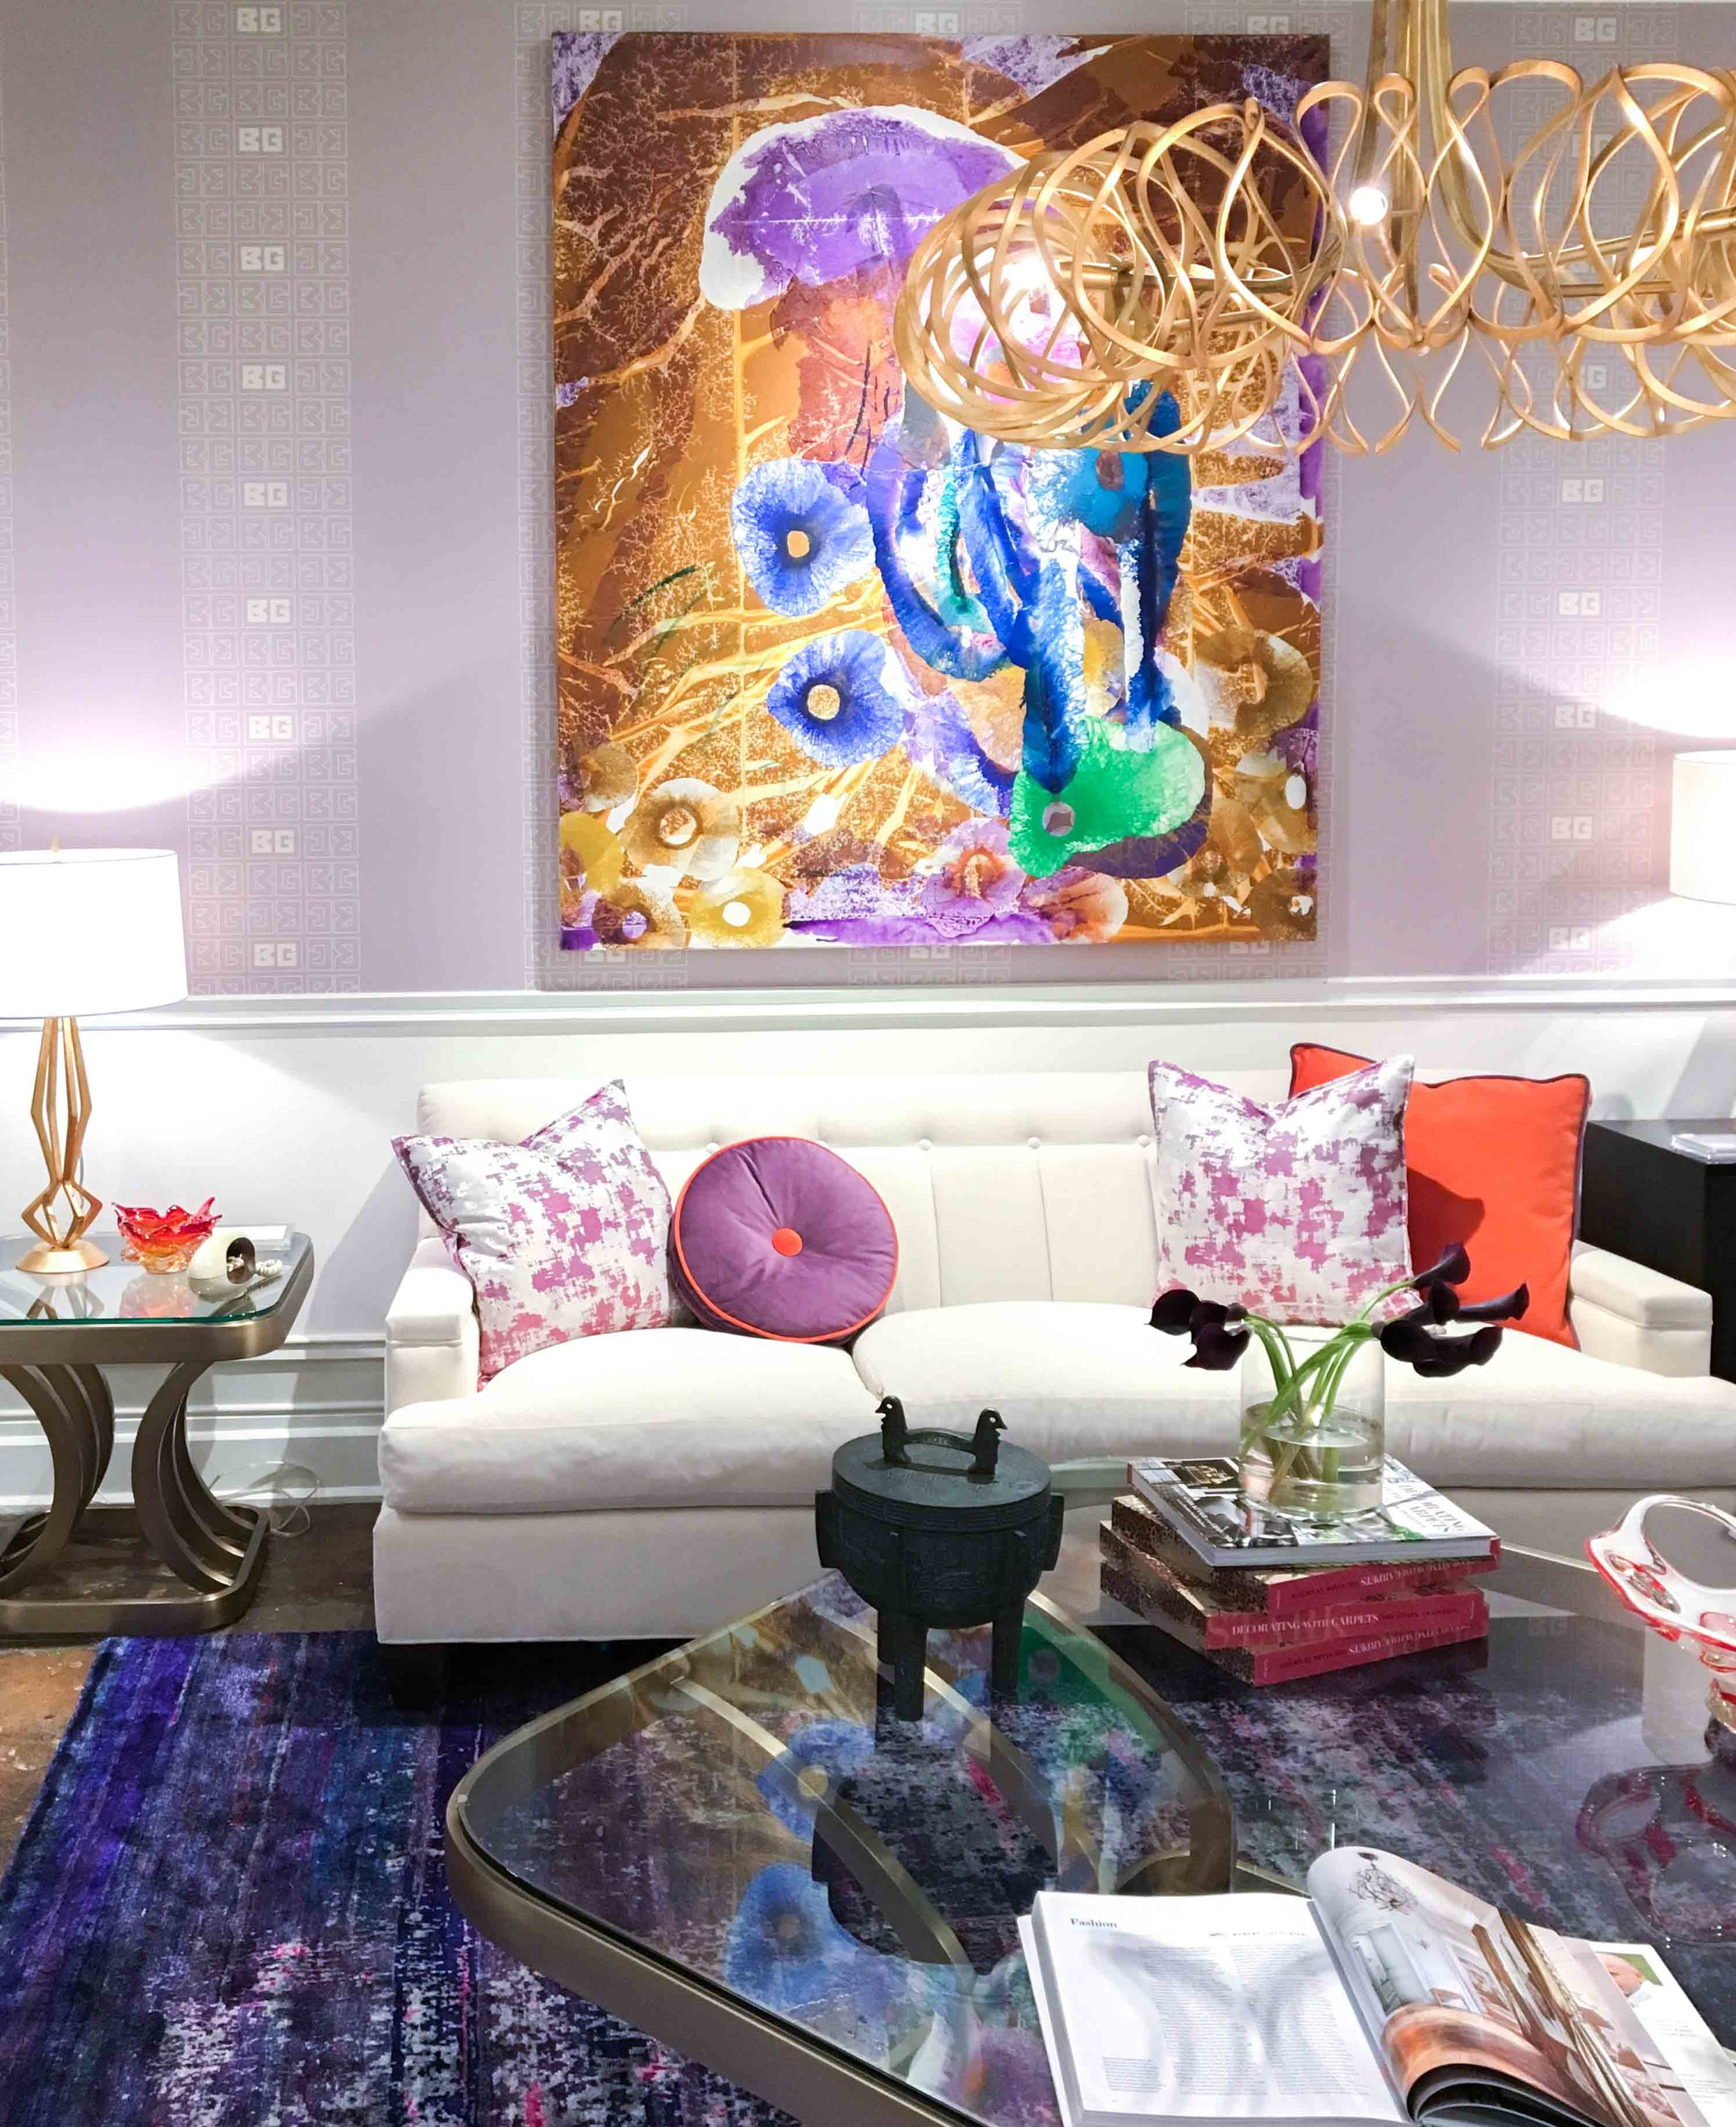 Barry Garlick for Vangaard's show room was so fun. Just love the retro feel and use of color.